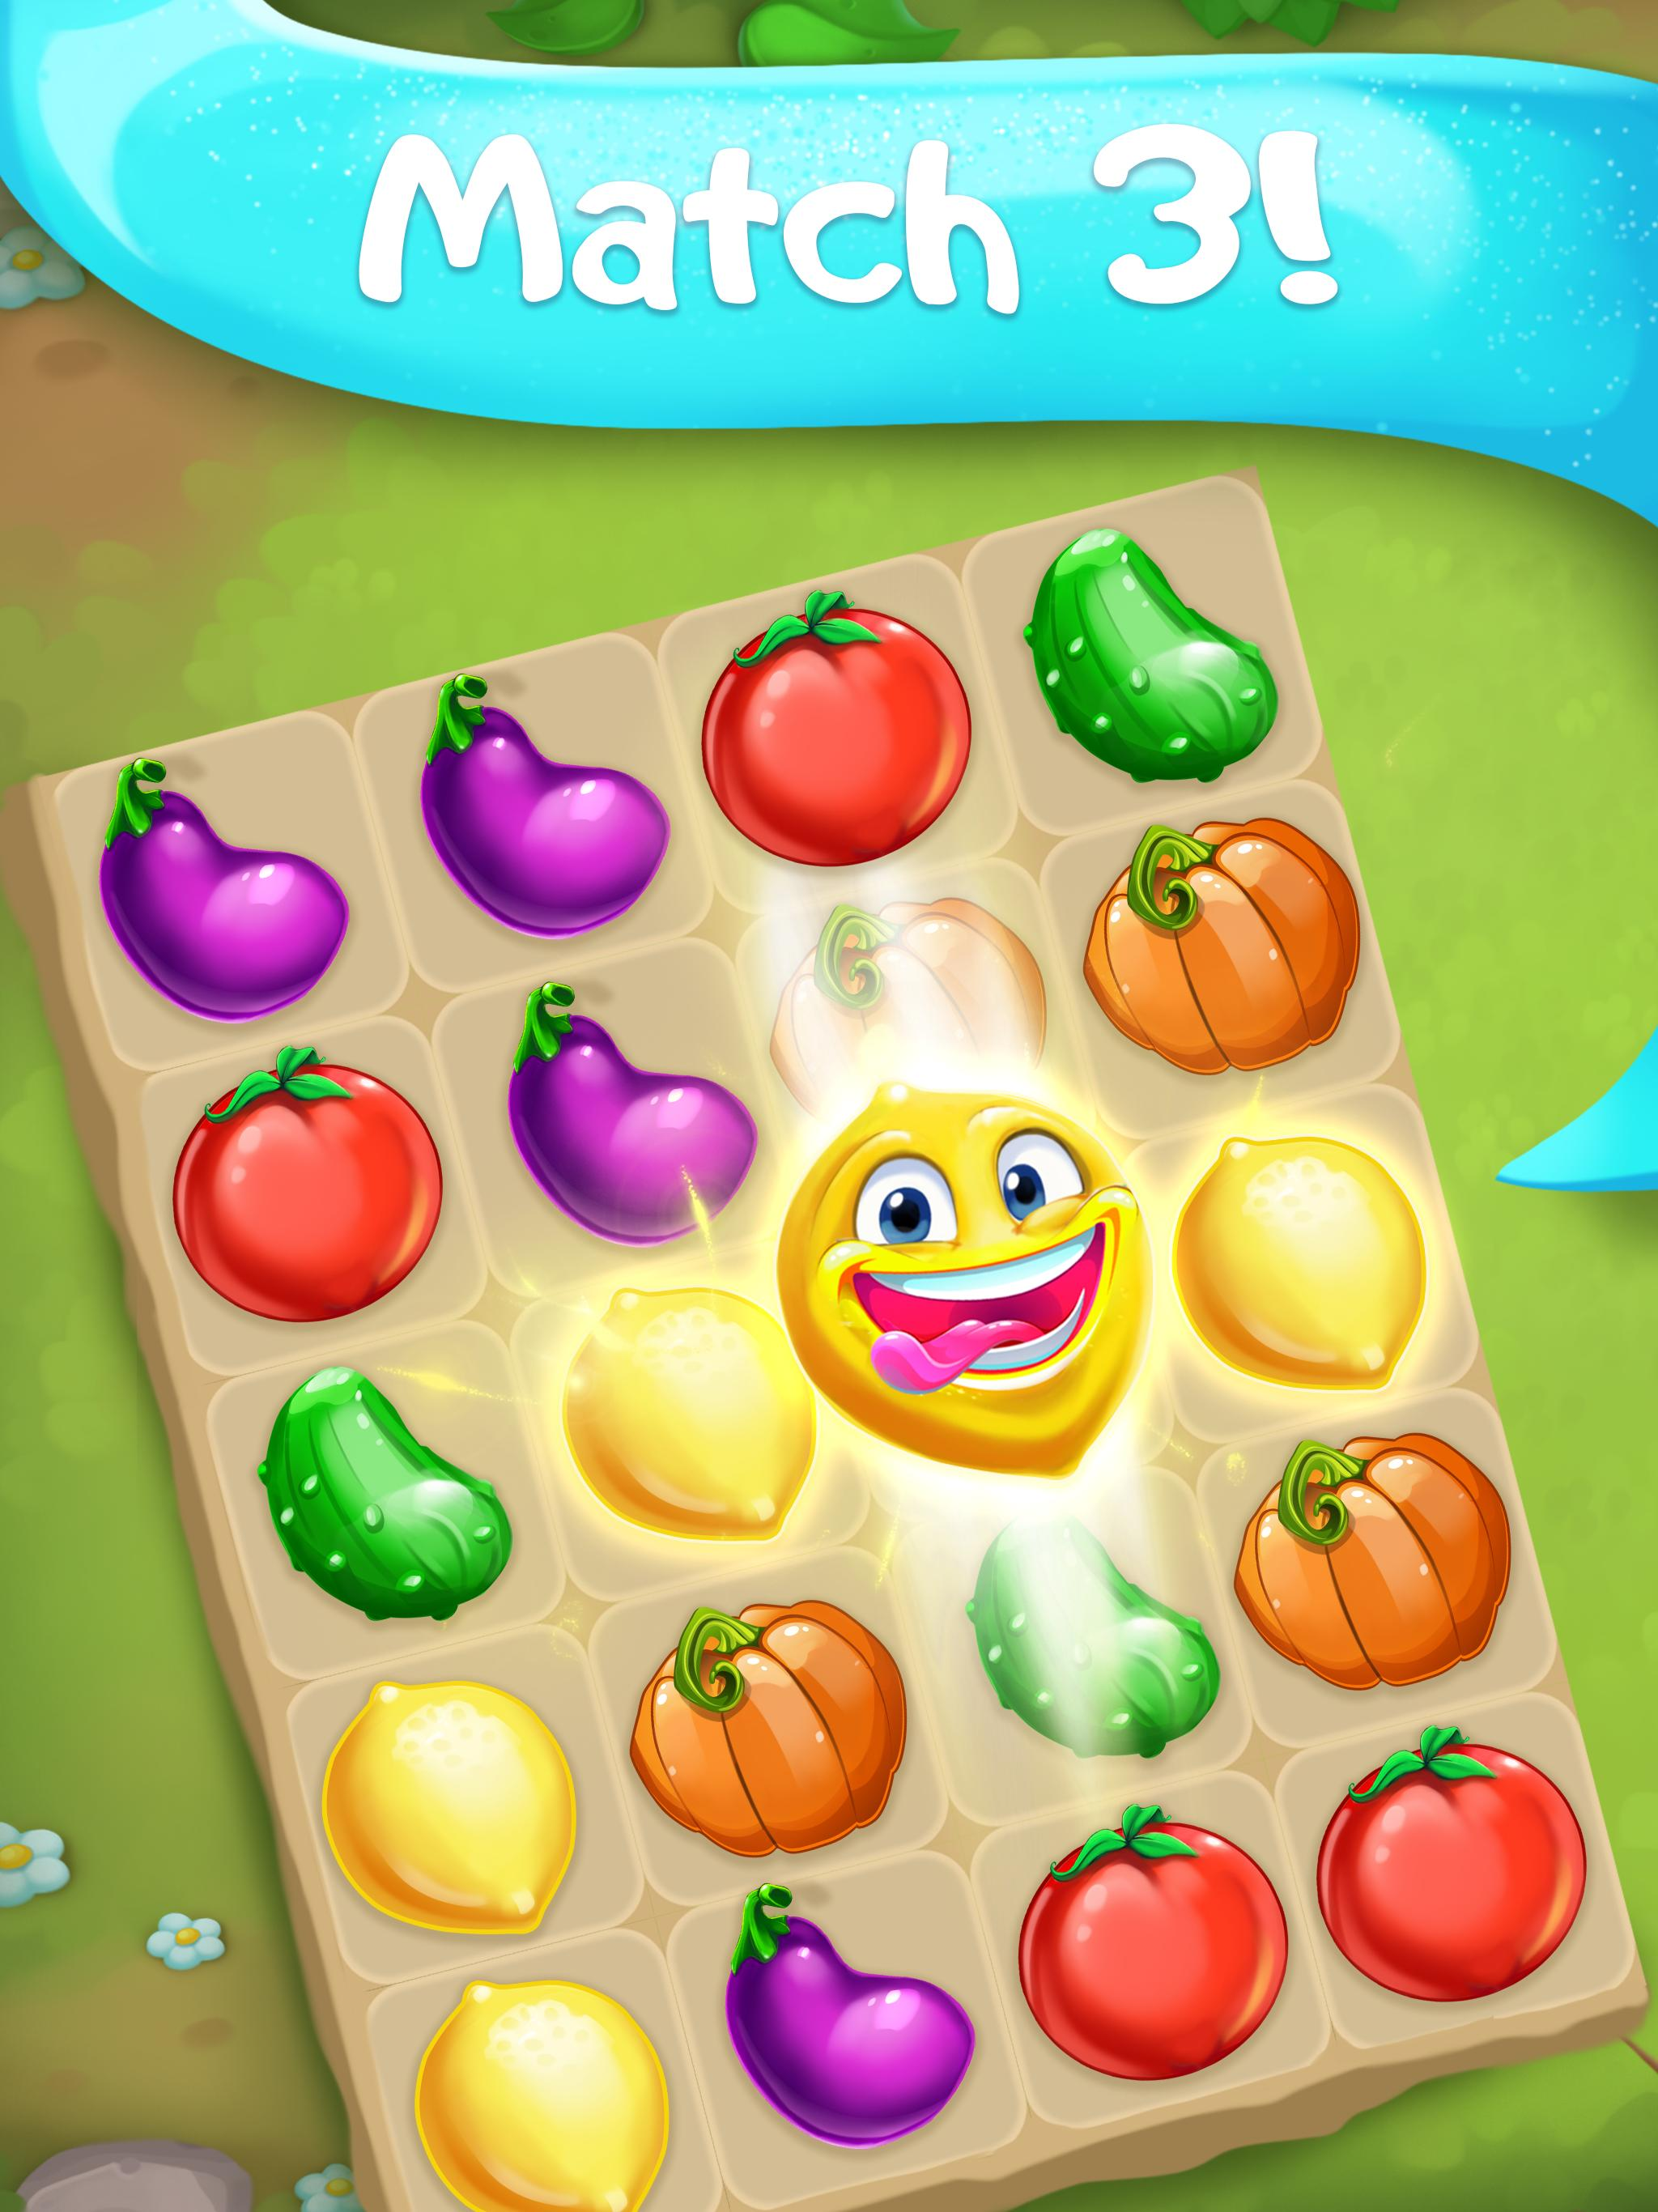 Funny Farm match 3 Puzzle game 1.53.0 Screenshot 6